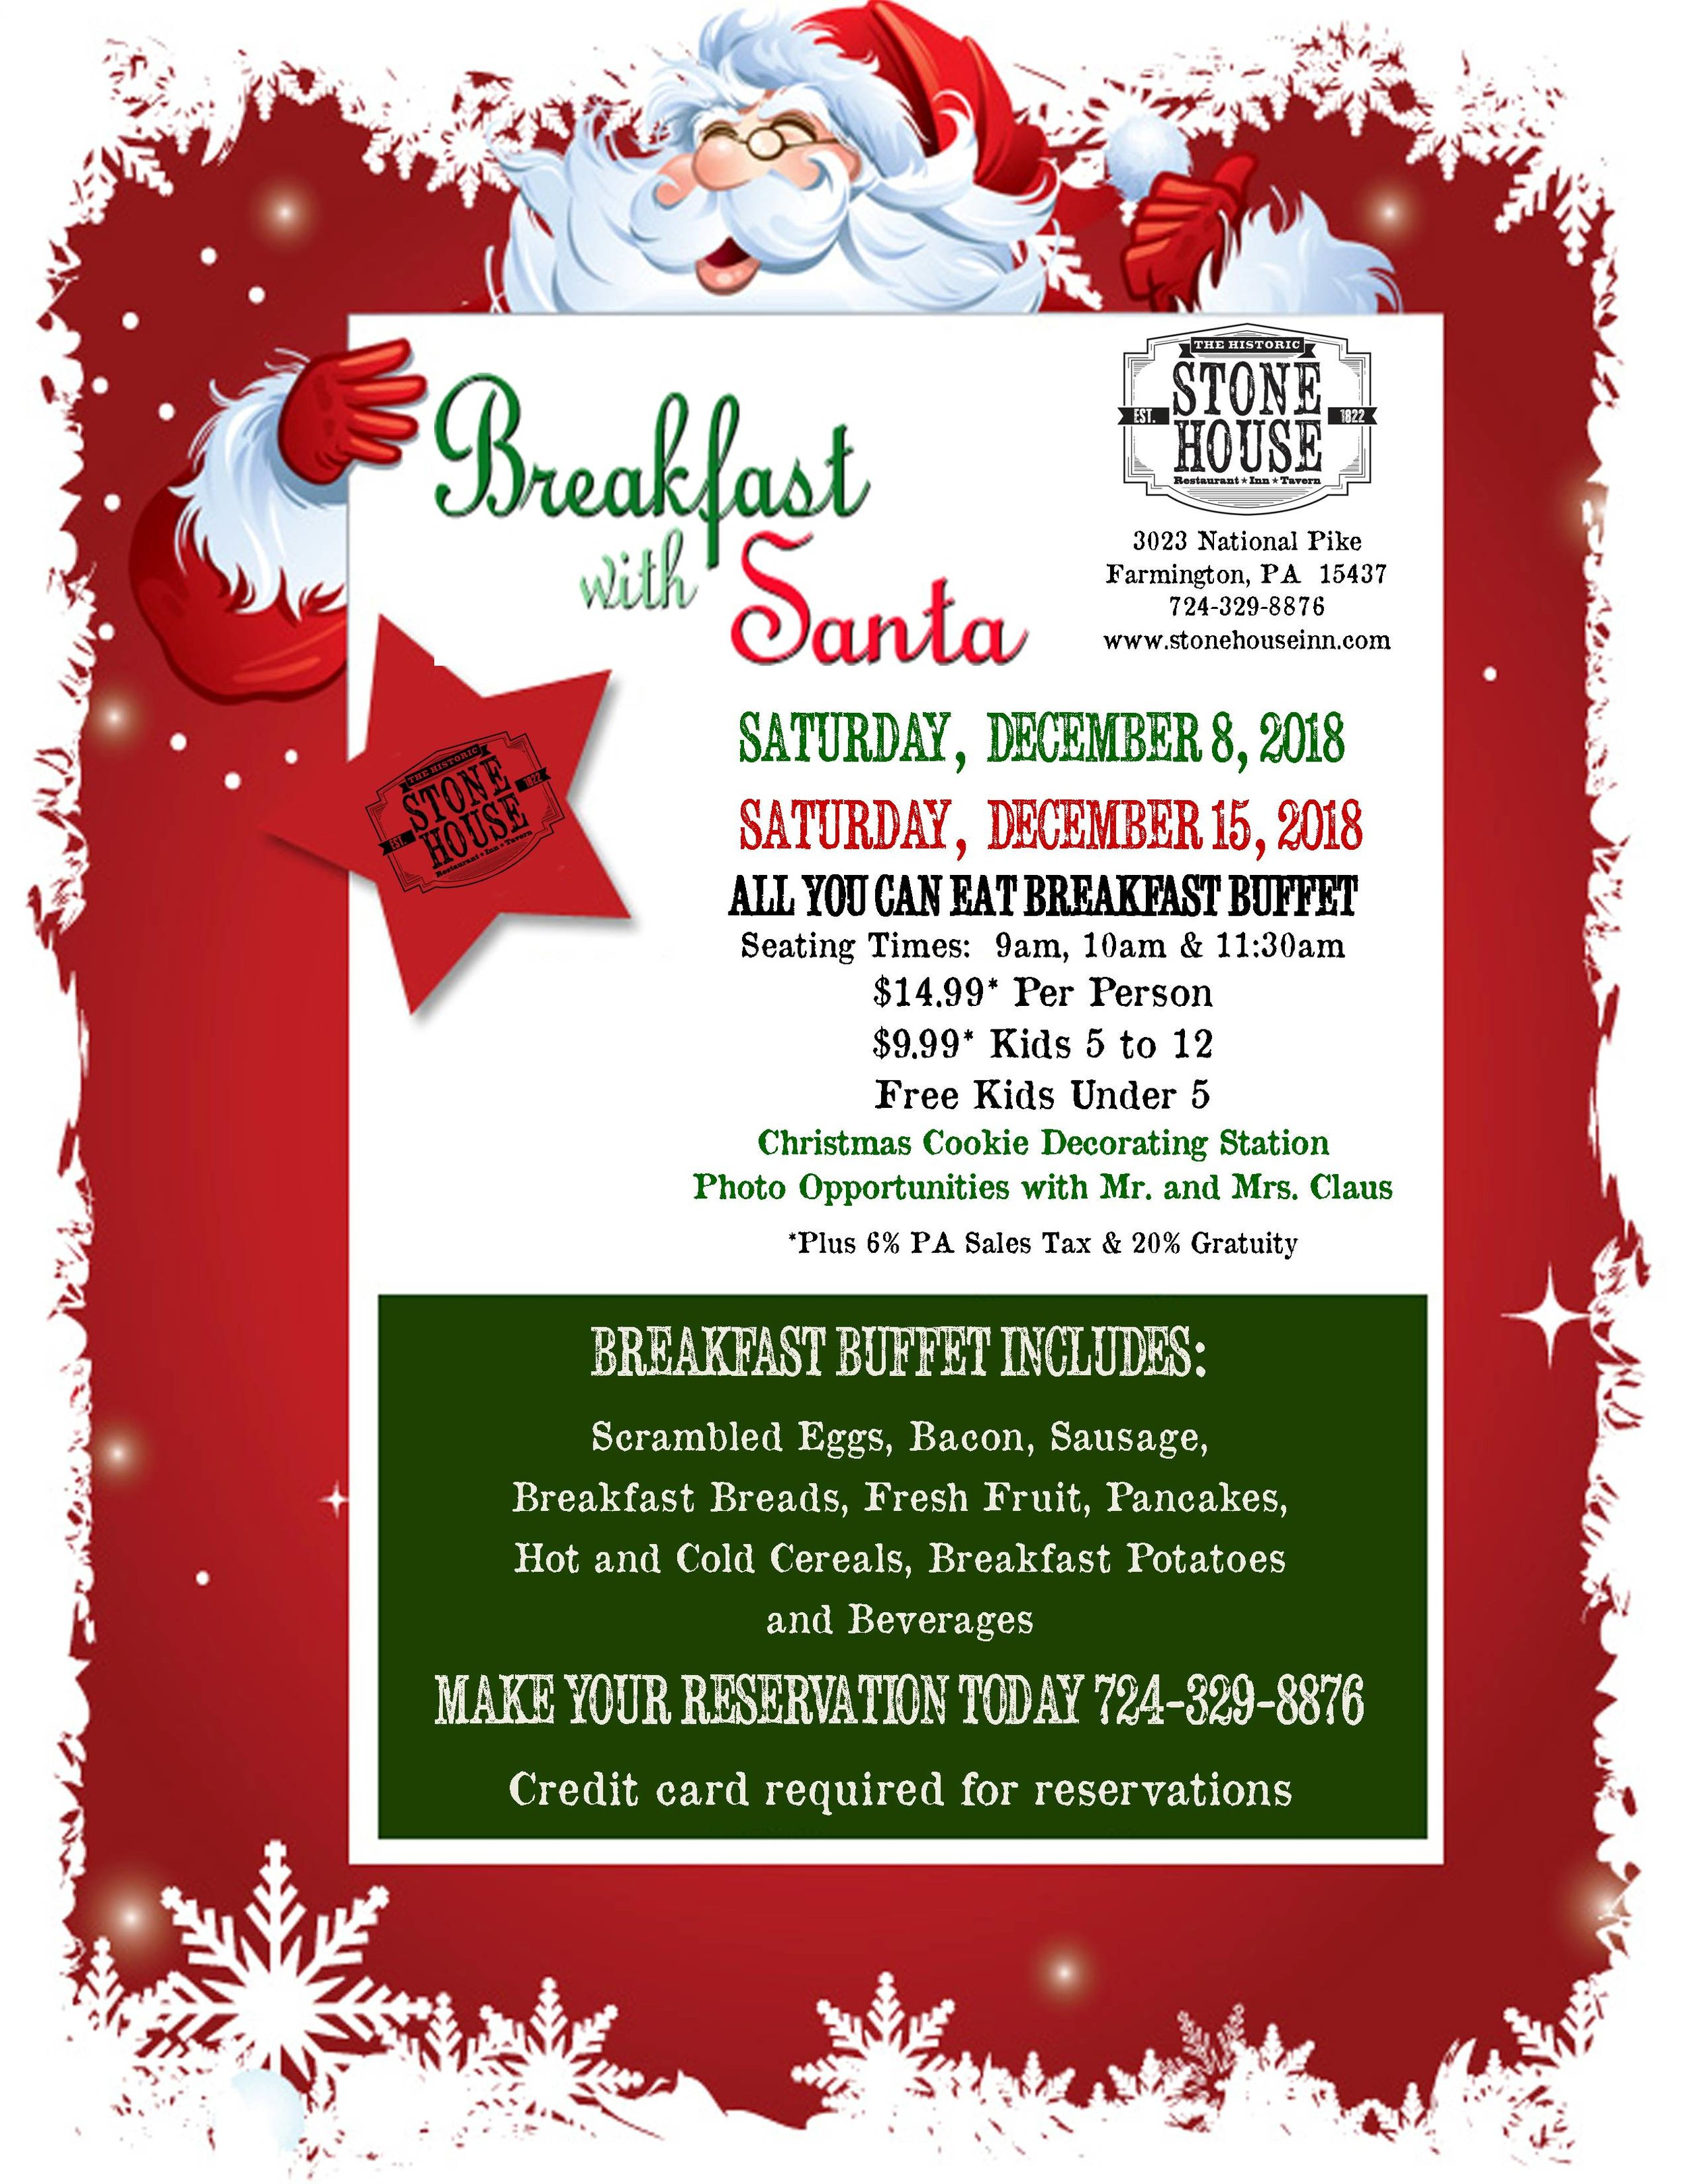 Breakfast with Santa Flyer 2018.jpg